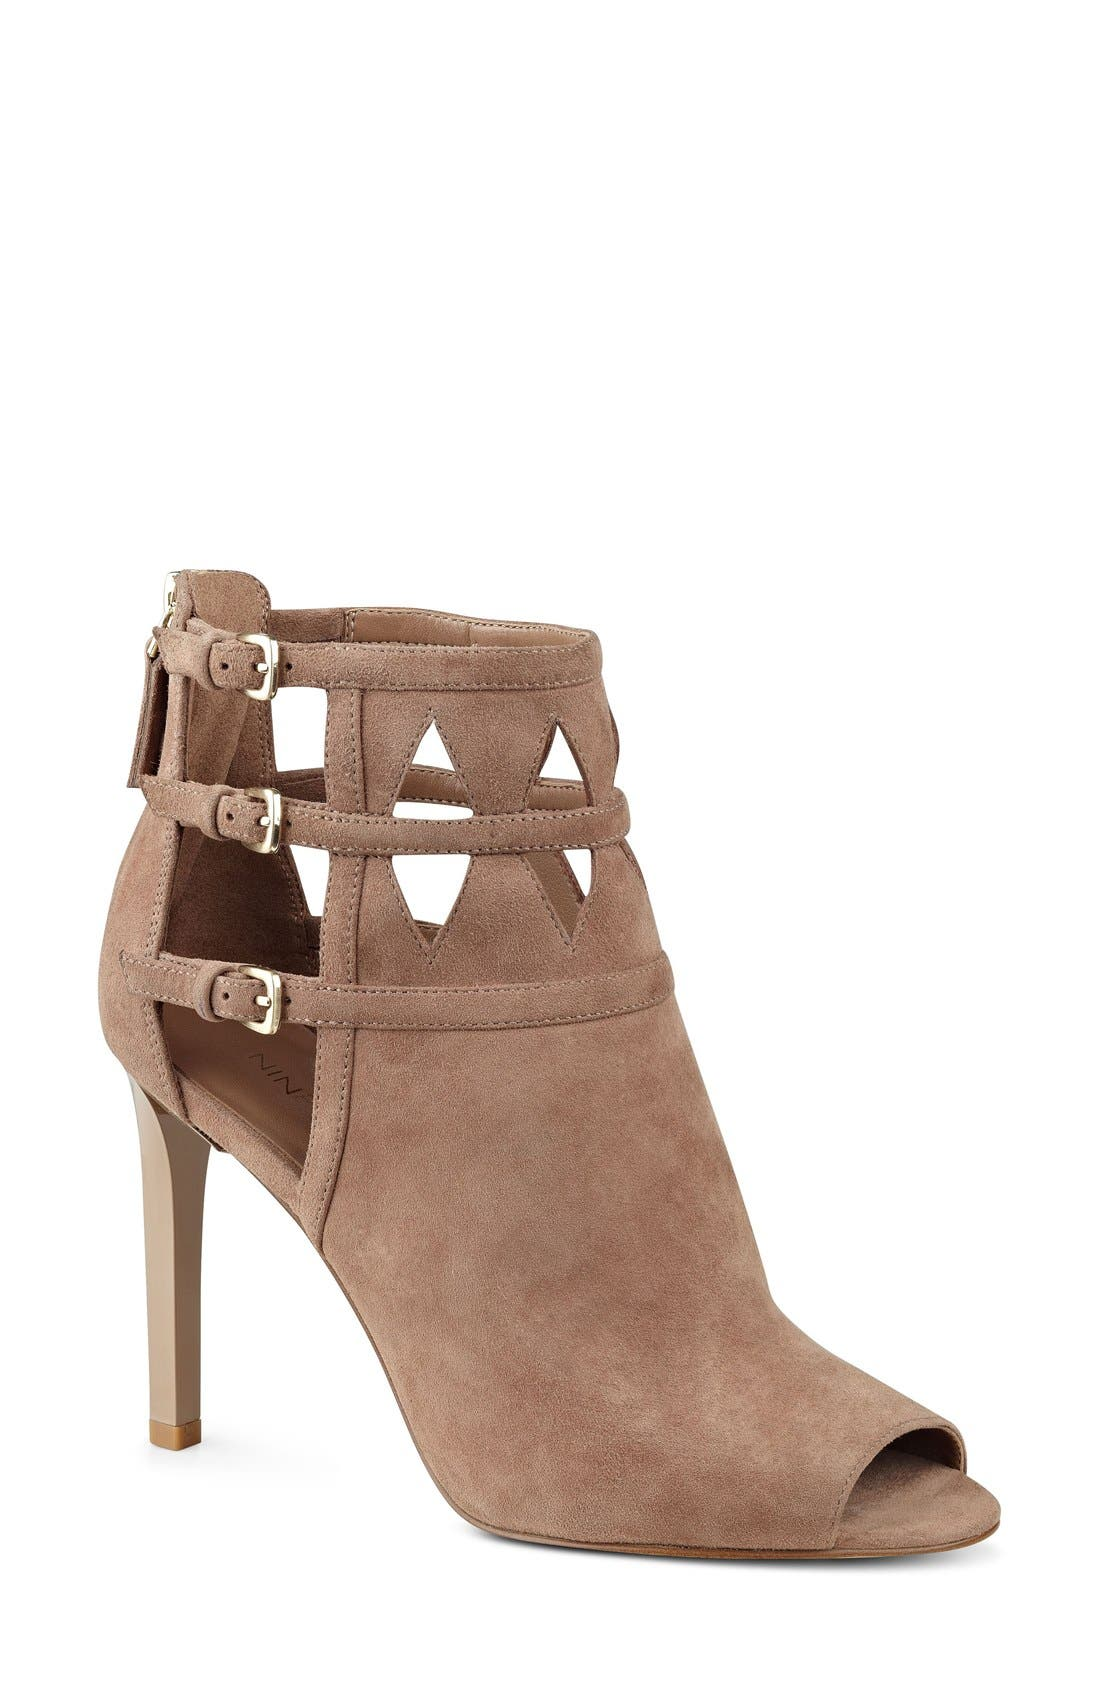 Main Image - Nine West 'Laulani' Cutout Peep Toe Bootie (Women)